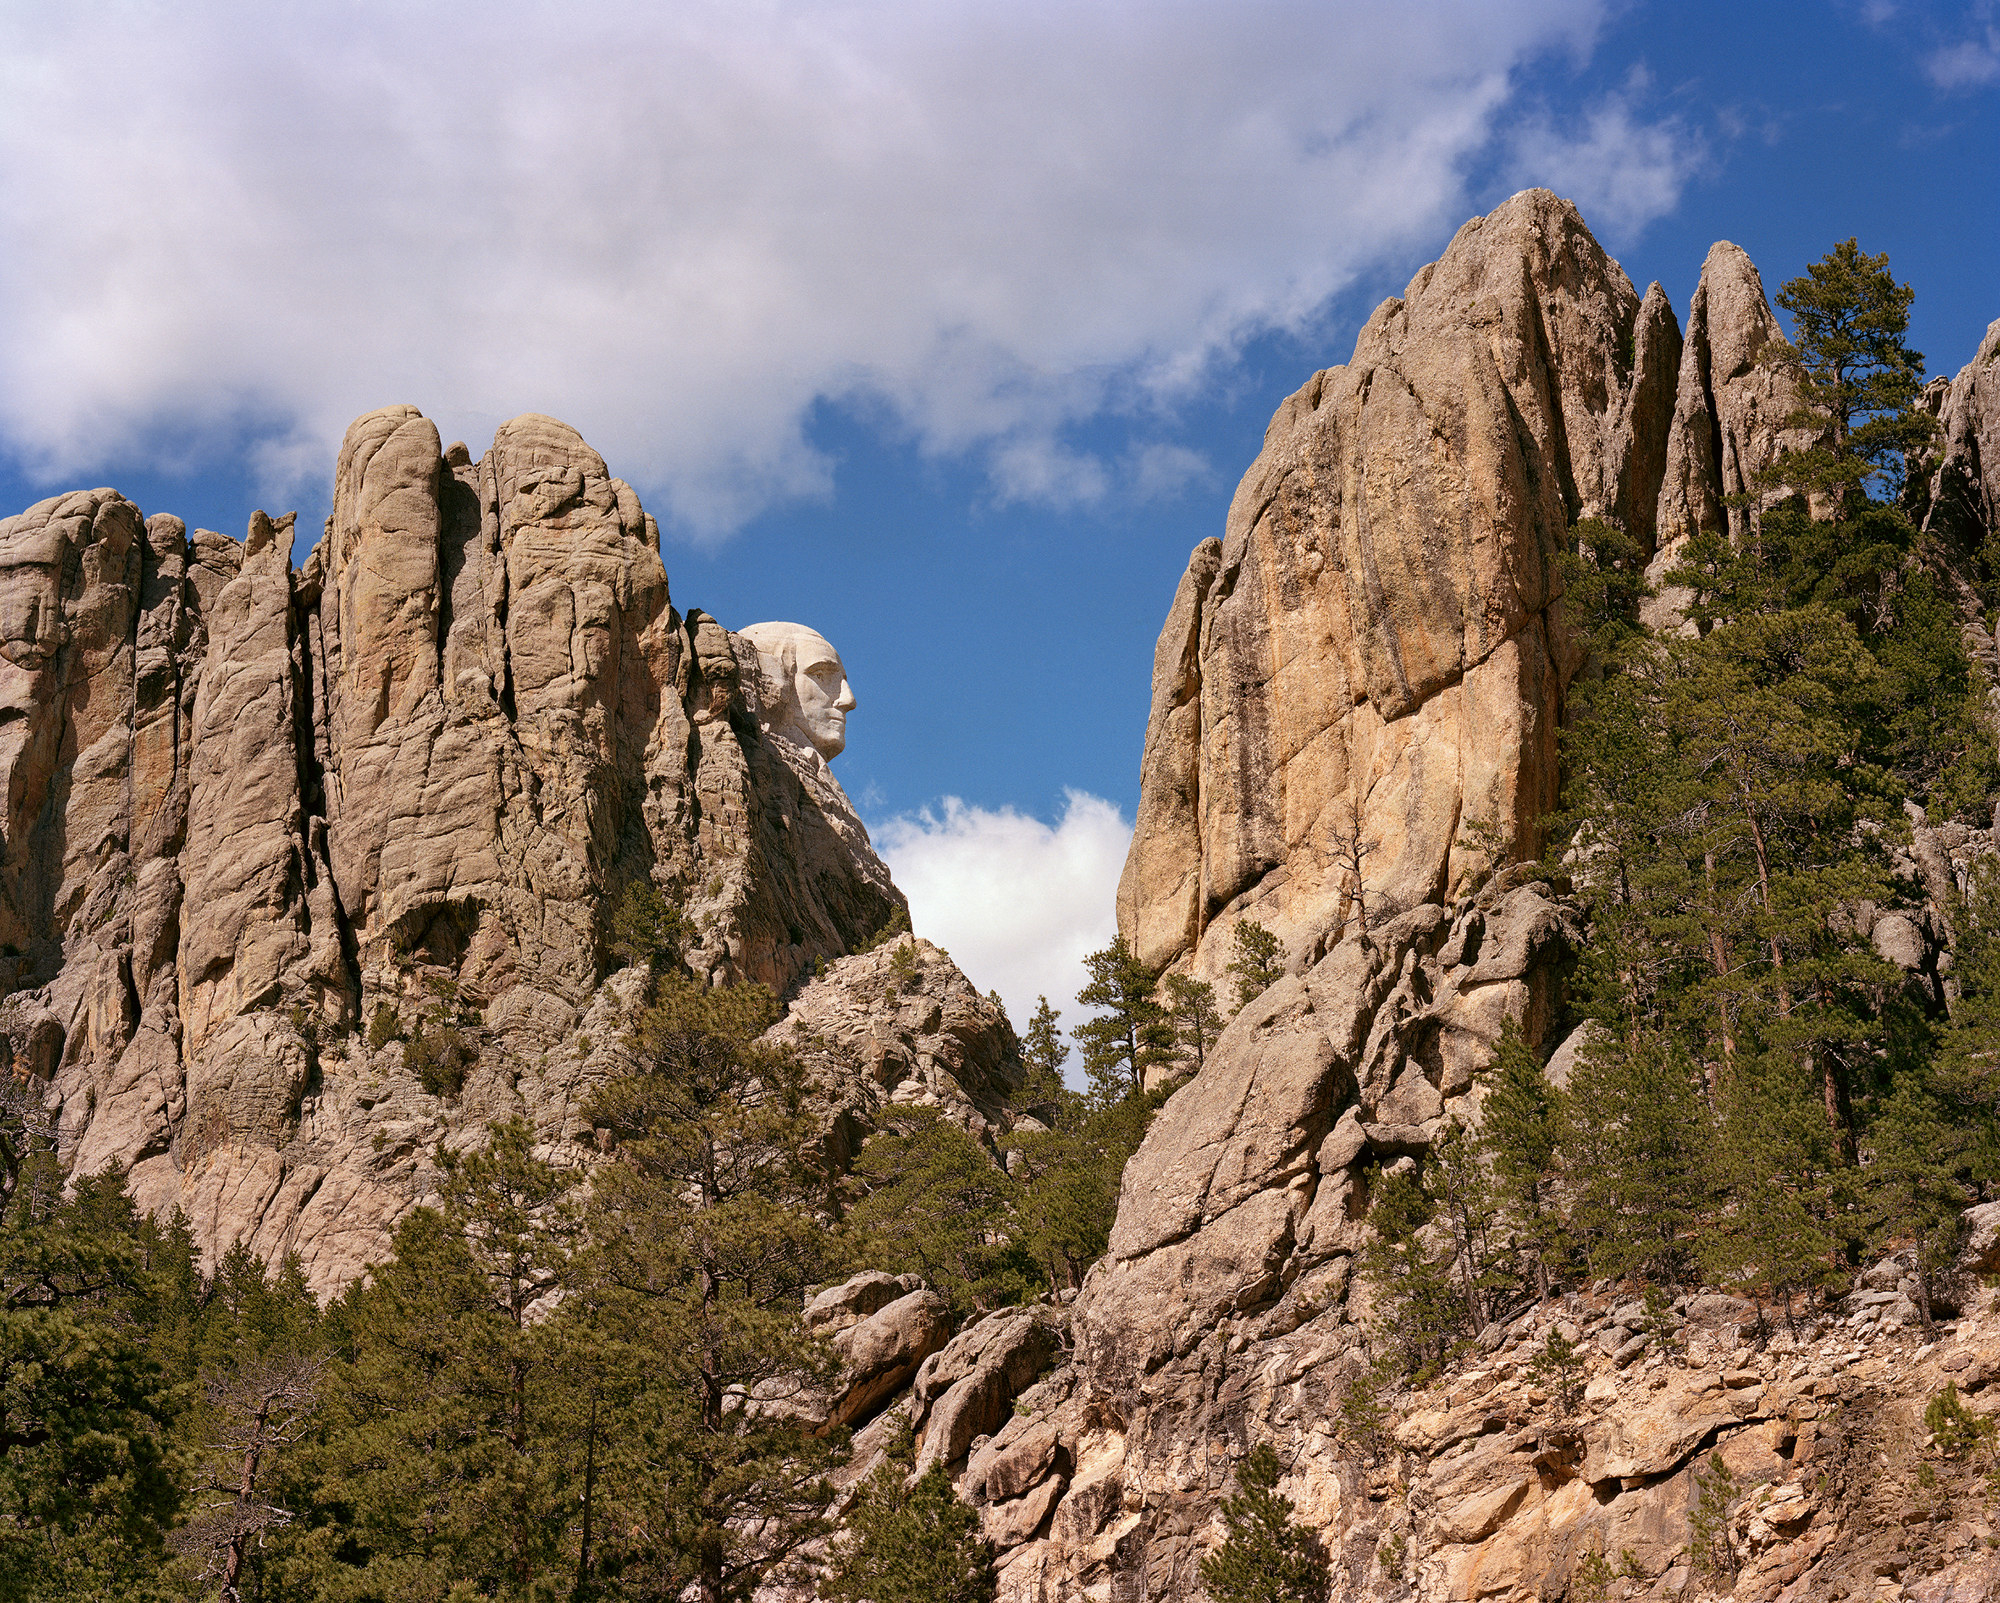 The face of George Washington appears in profile in the red rock